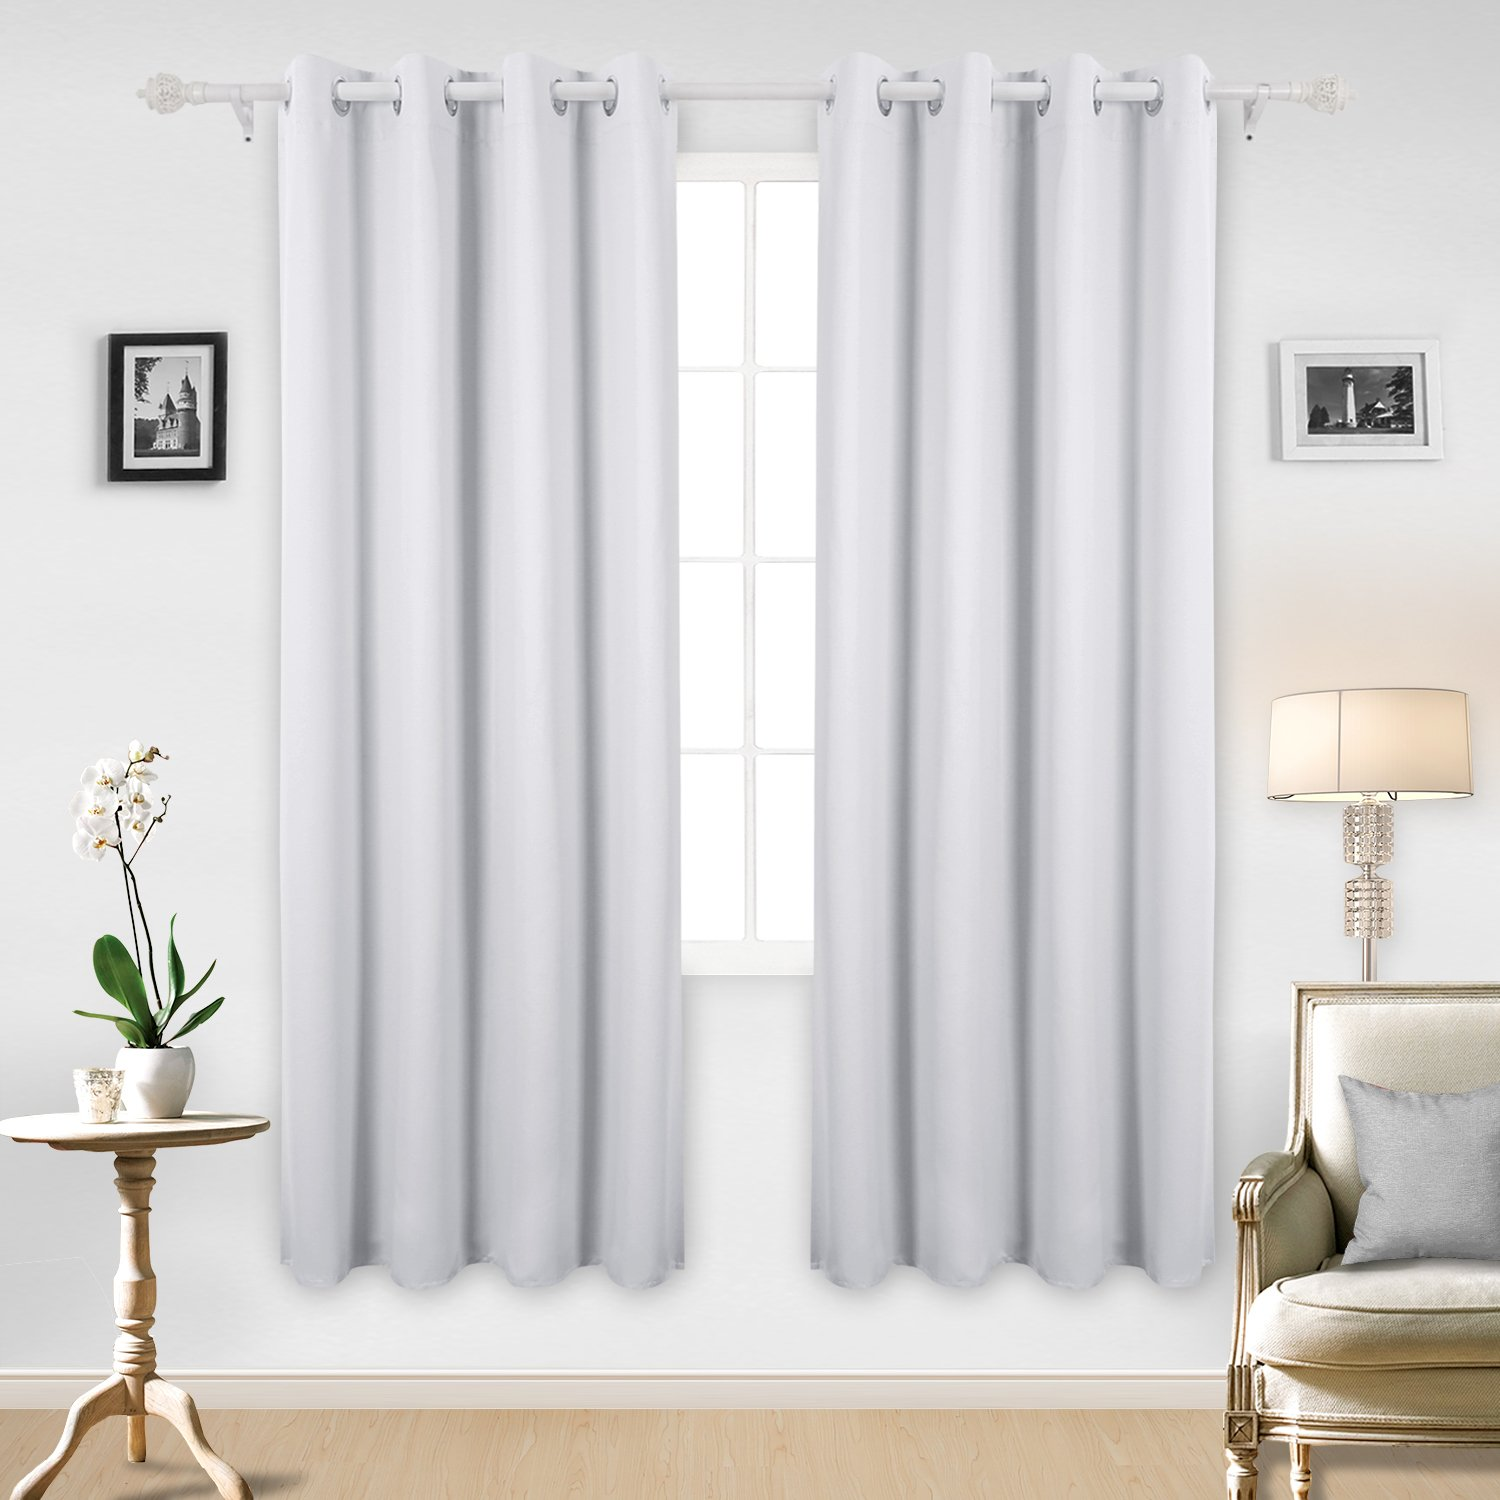 Deconovo Thermal Insulated Blackout Curtains Marble Design Texture Embossed Grommet Panel for Bedroom 52x84 Inch Off White One Pair